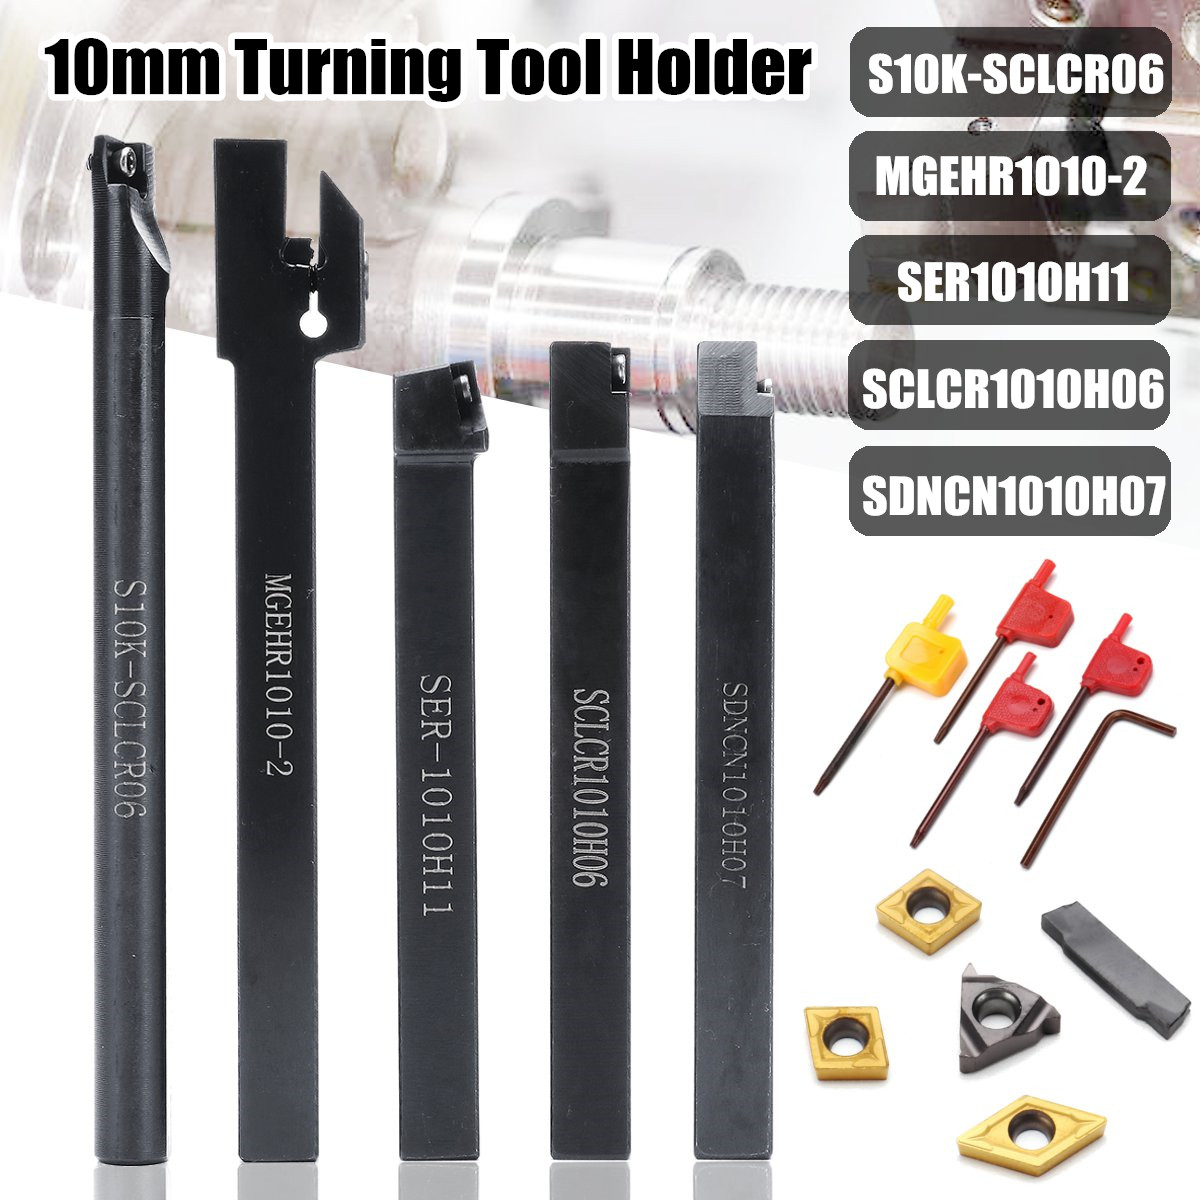 WOLIKE 5pcs 10MM Shank Turning Tool Holder Set With Inserts Blade Wrench For Bench Lathe And CNC